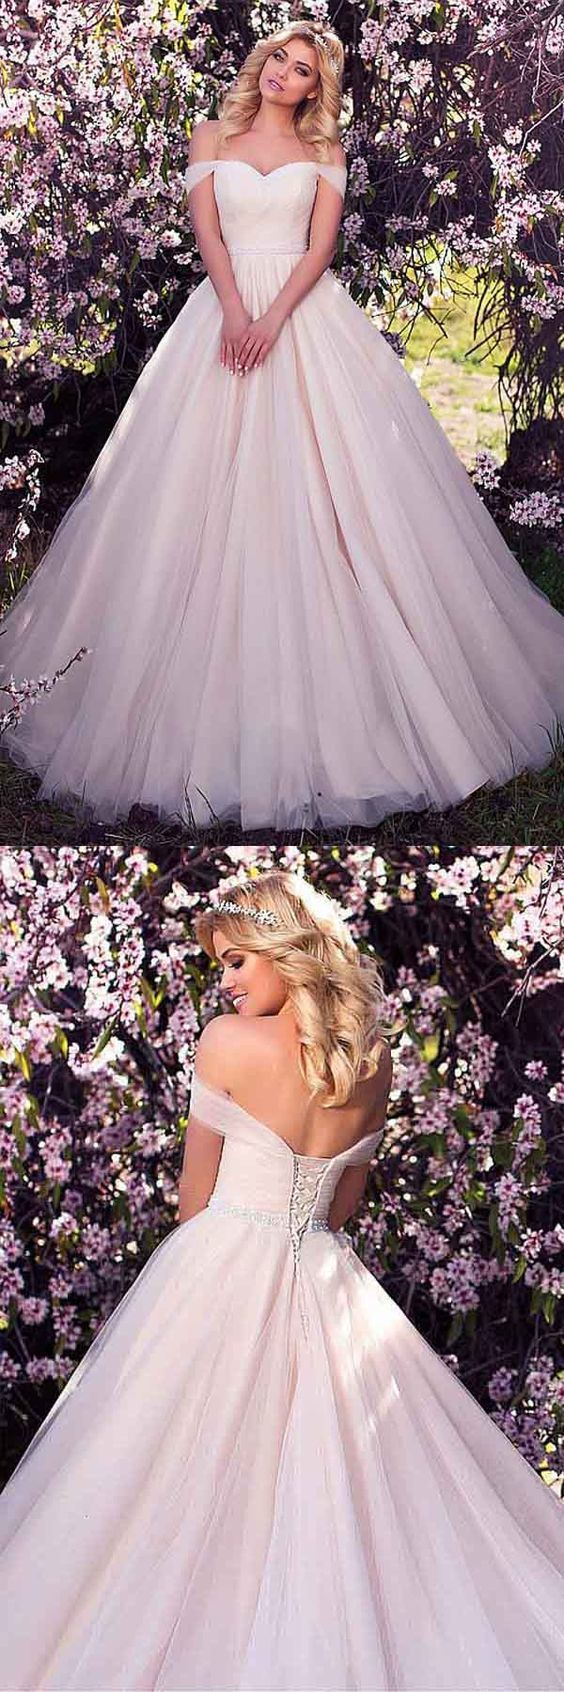 Tulle Off-the-shoulder Neckline A-line Prom Dress With Beading